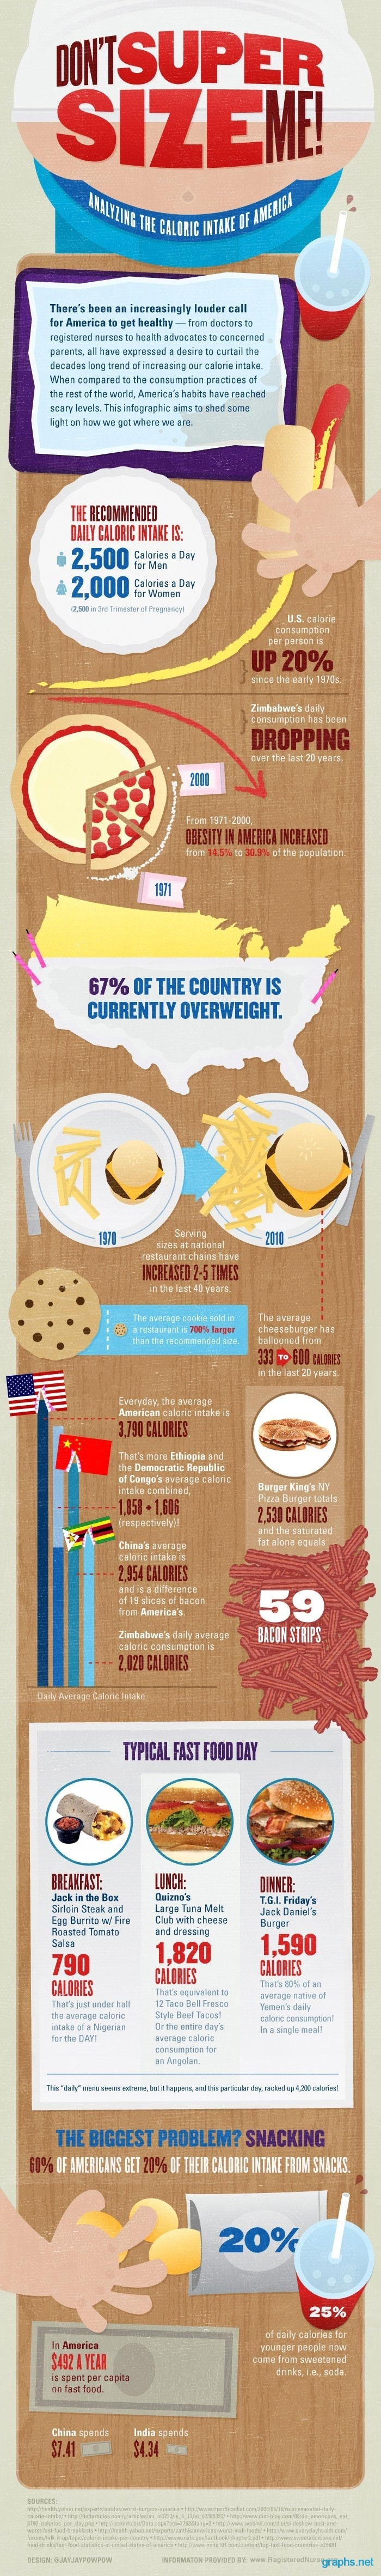 american calories health benefits